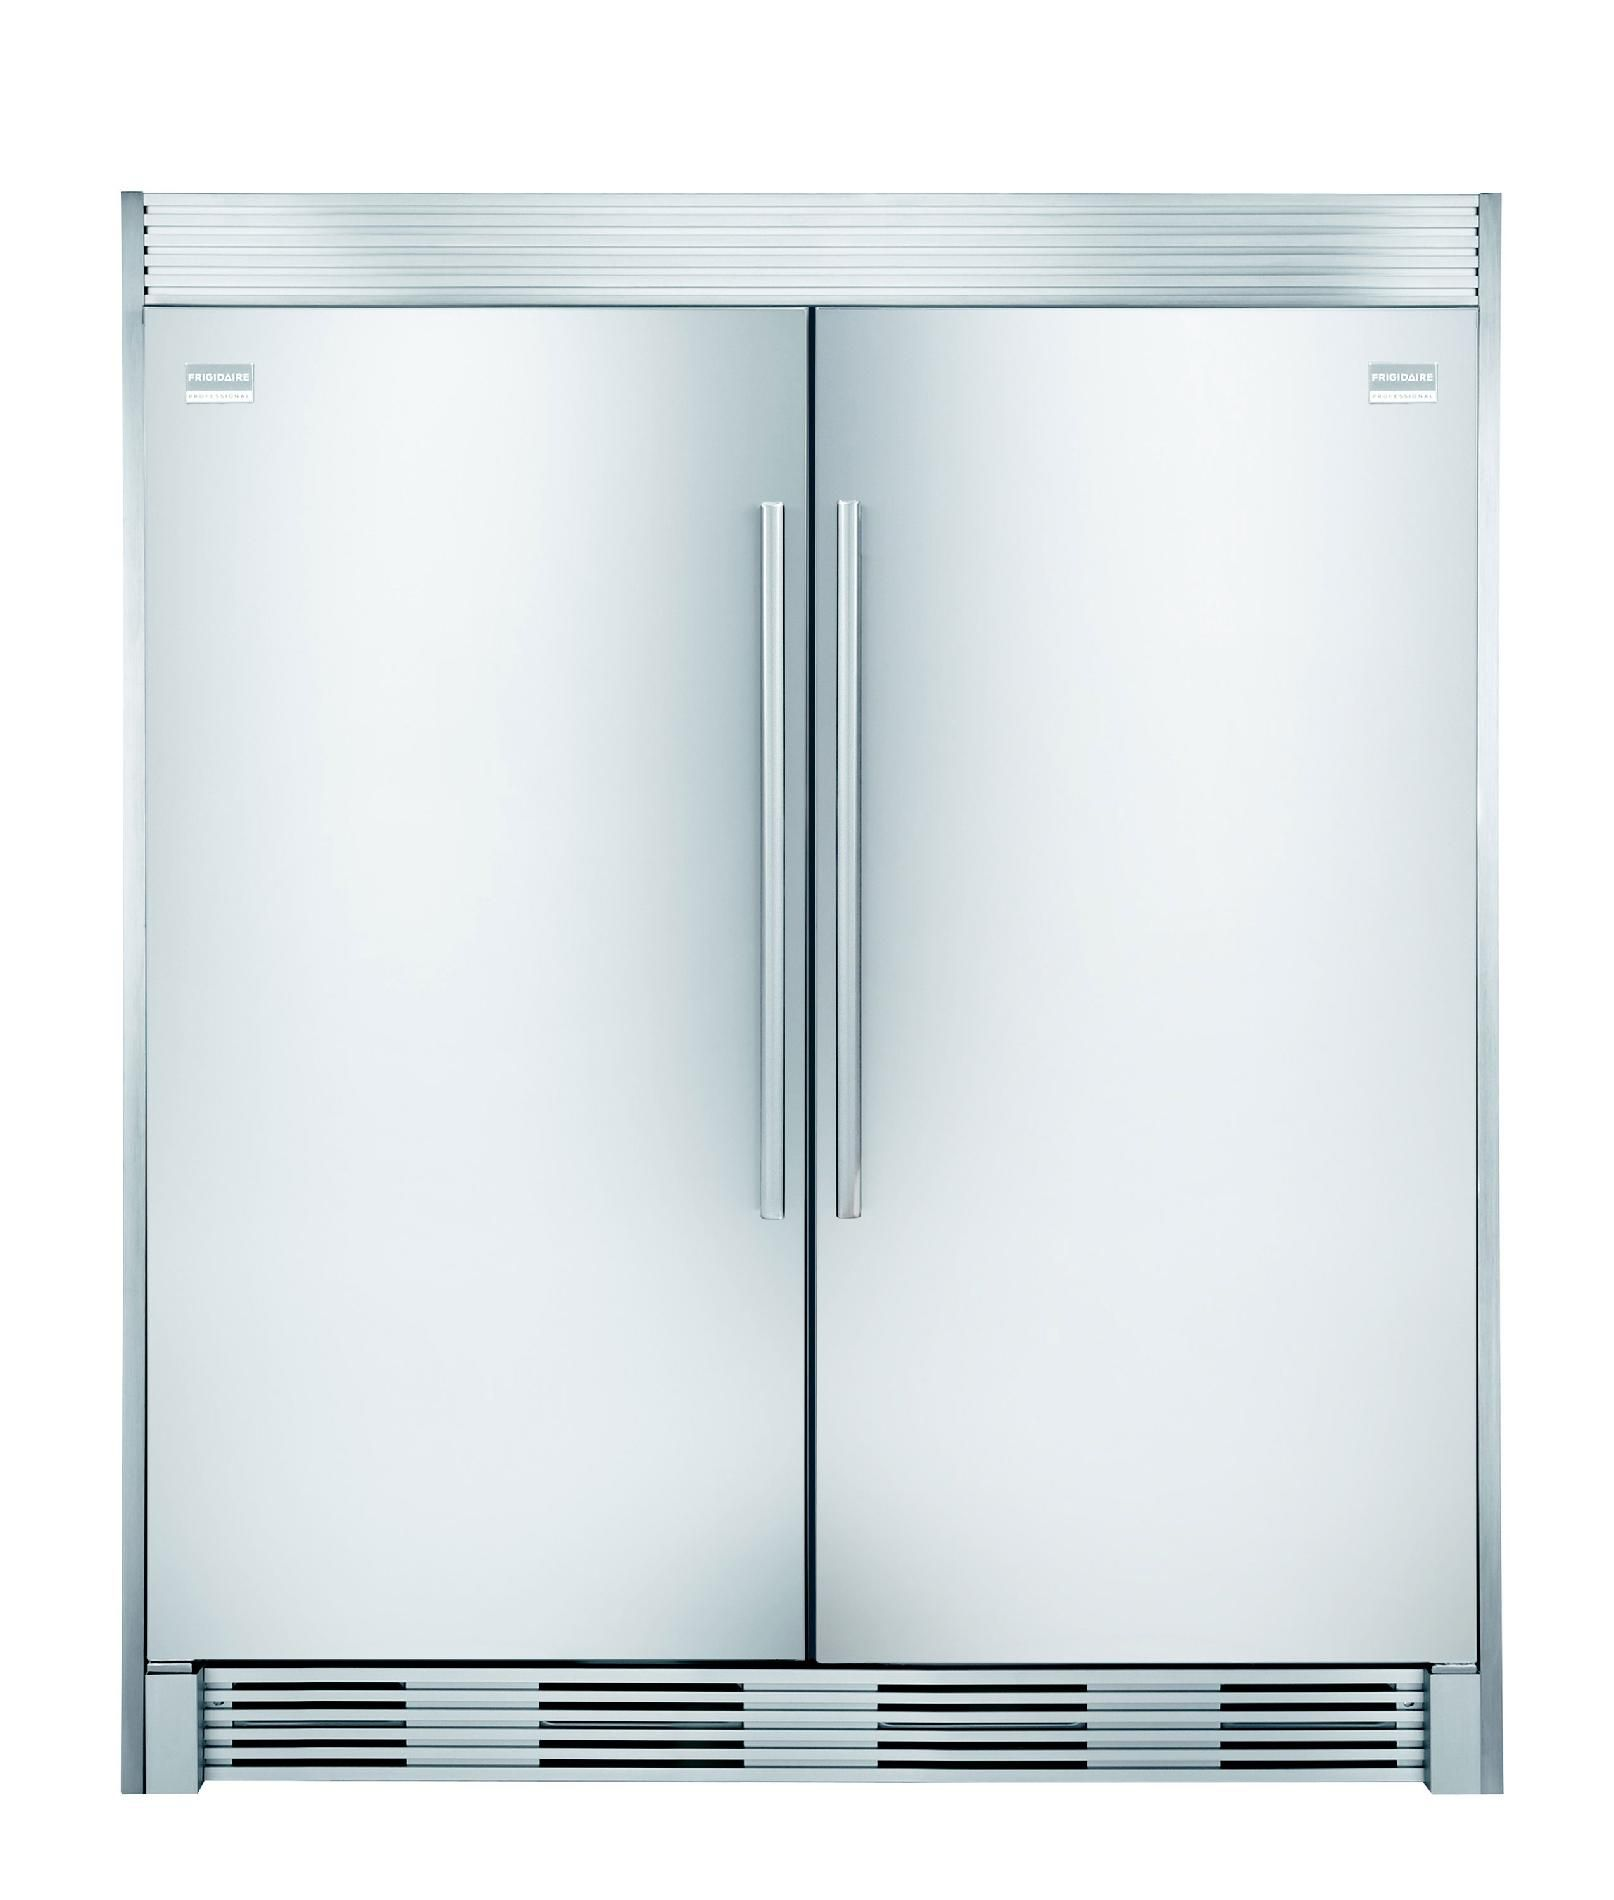 Frigidaire 19.0 cu. ft. Built-In All Freezer - Stainless Steel